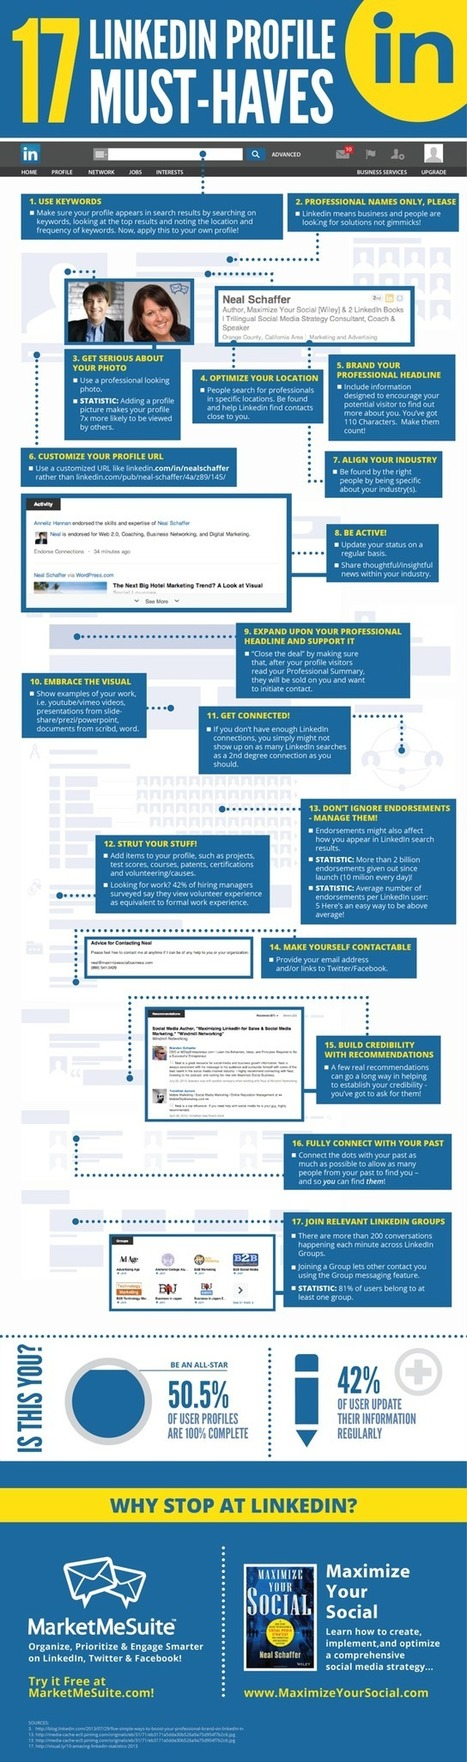 17 LinkedIn Profile Must-Haves - Blog About Infographics and Data Visualization - Cool Infographics | Social Media sites | Scoop.it